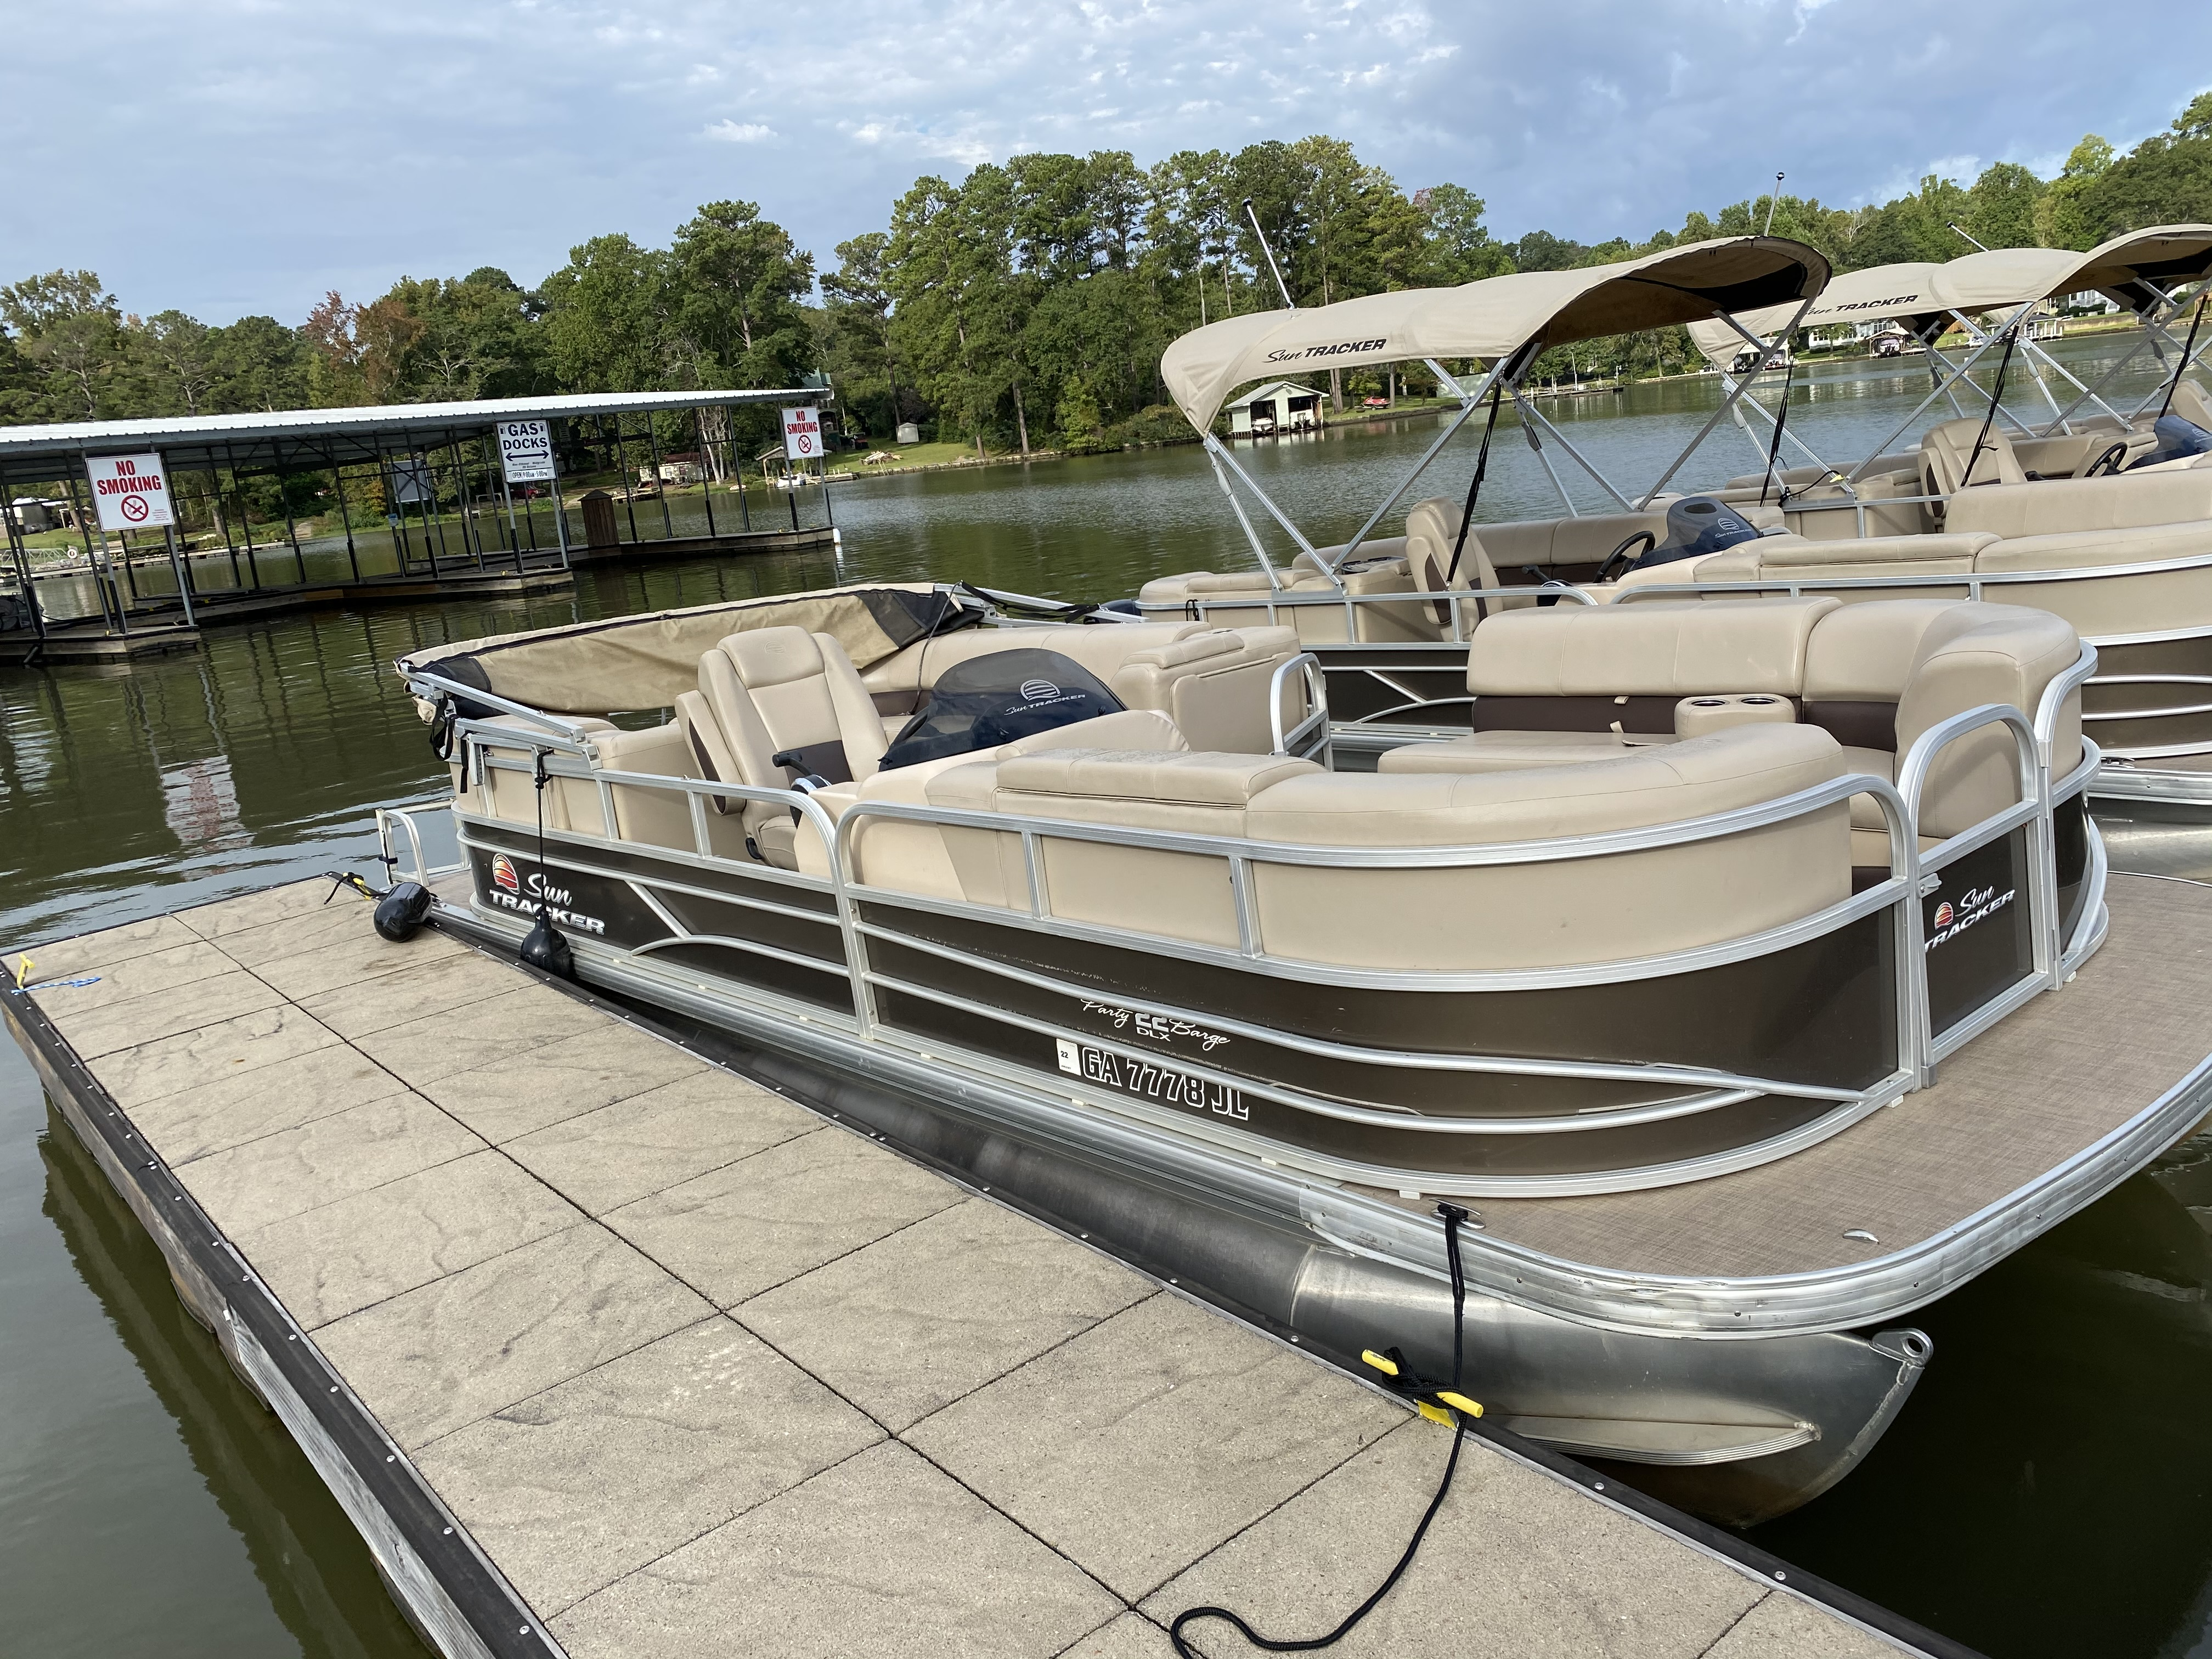 2019 Sun Tracker boat for sale, model of the boat is PARTY BARGE 22 w/ Mercury 115Hp 4S & Image # 10 of 22